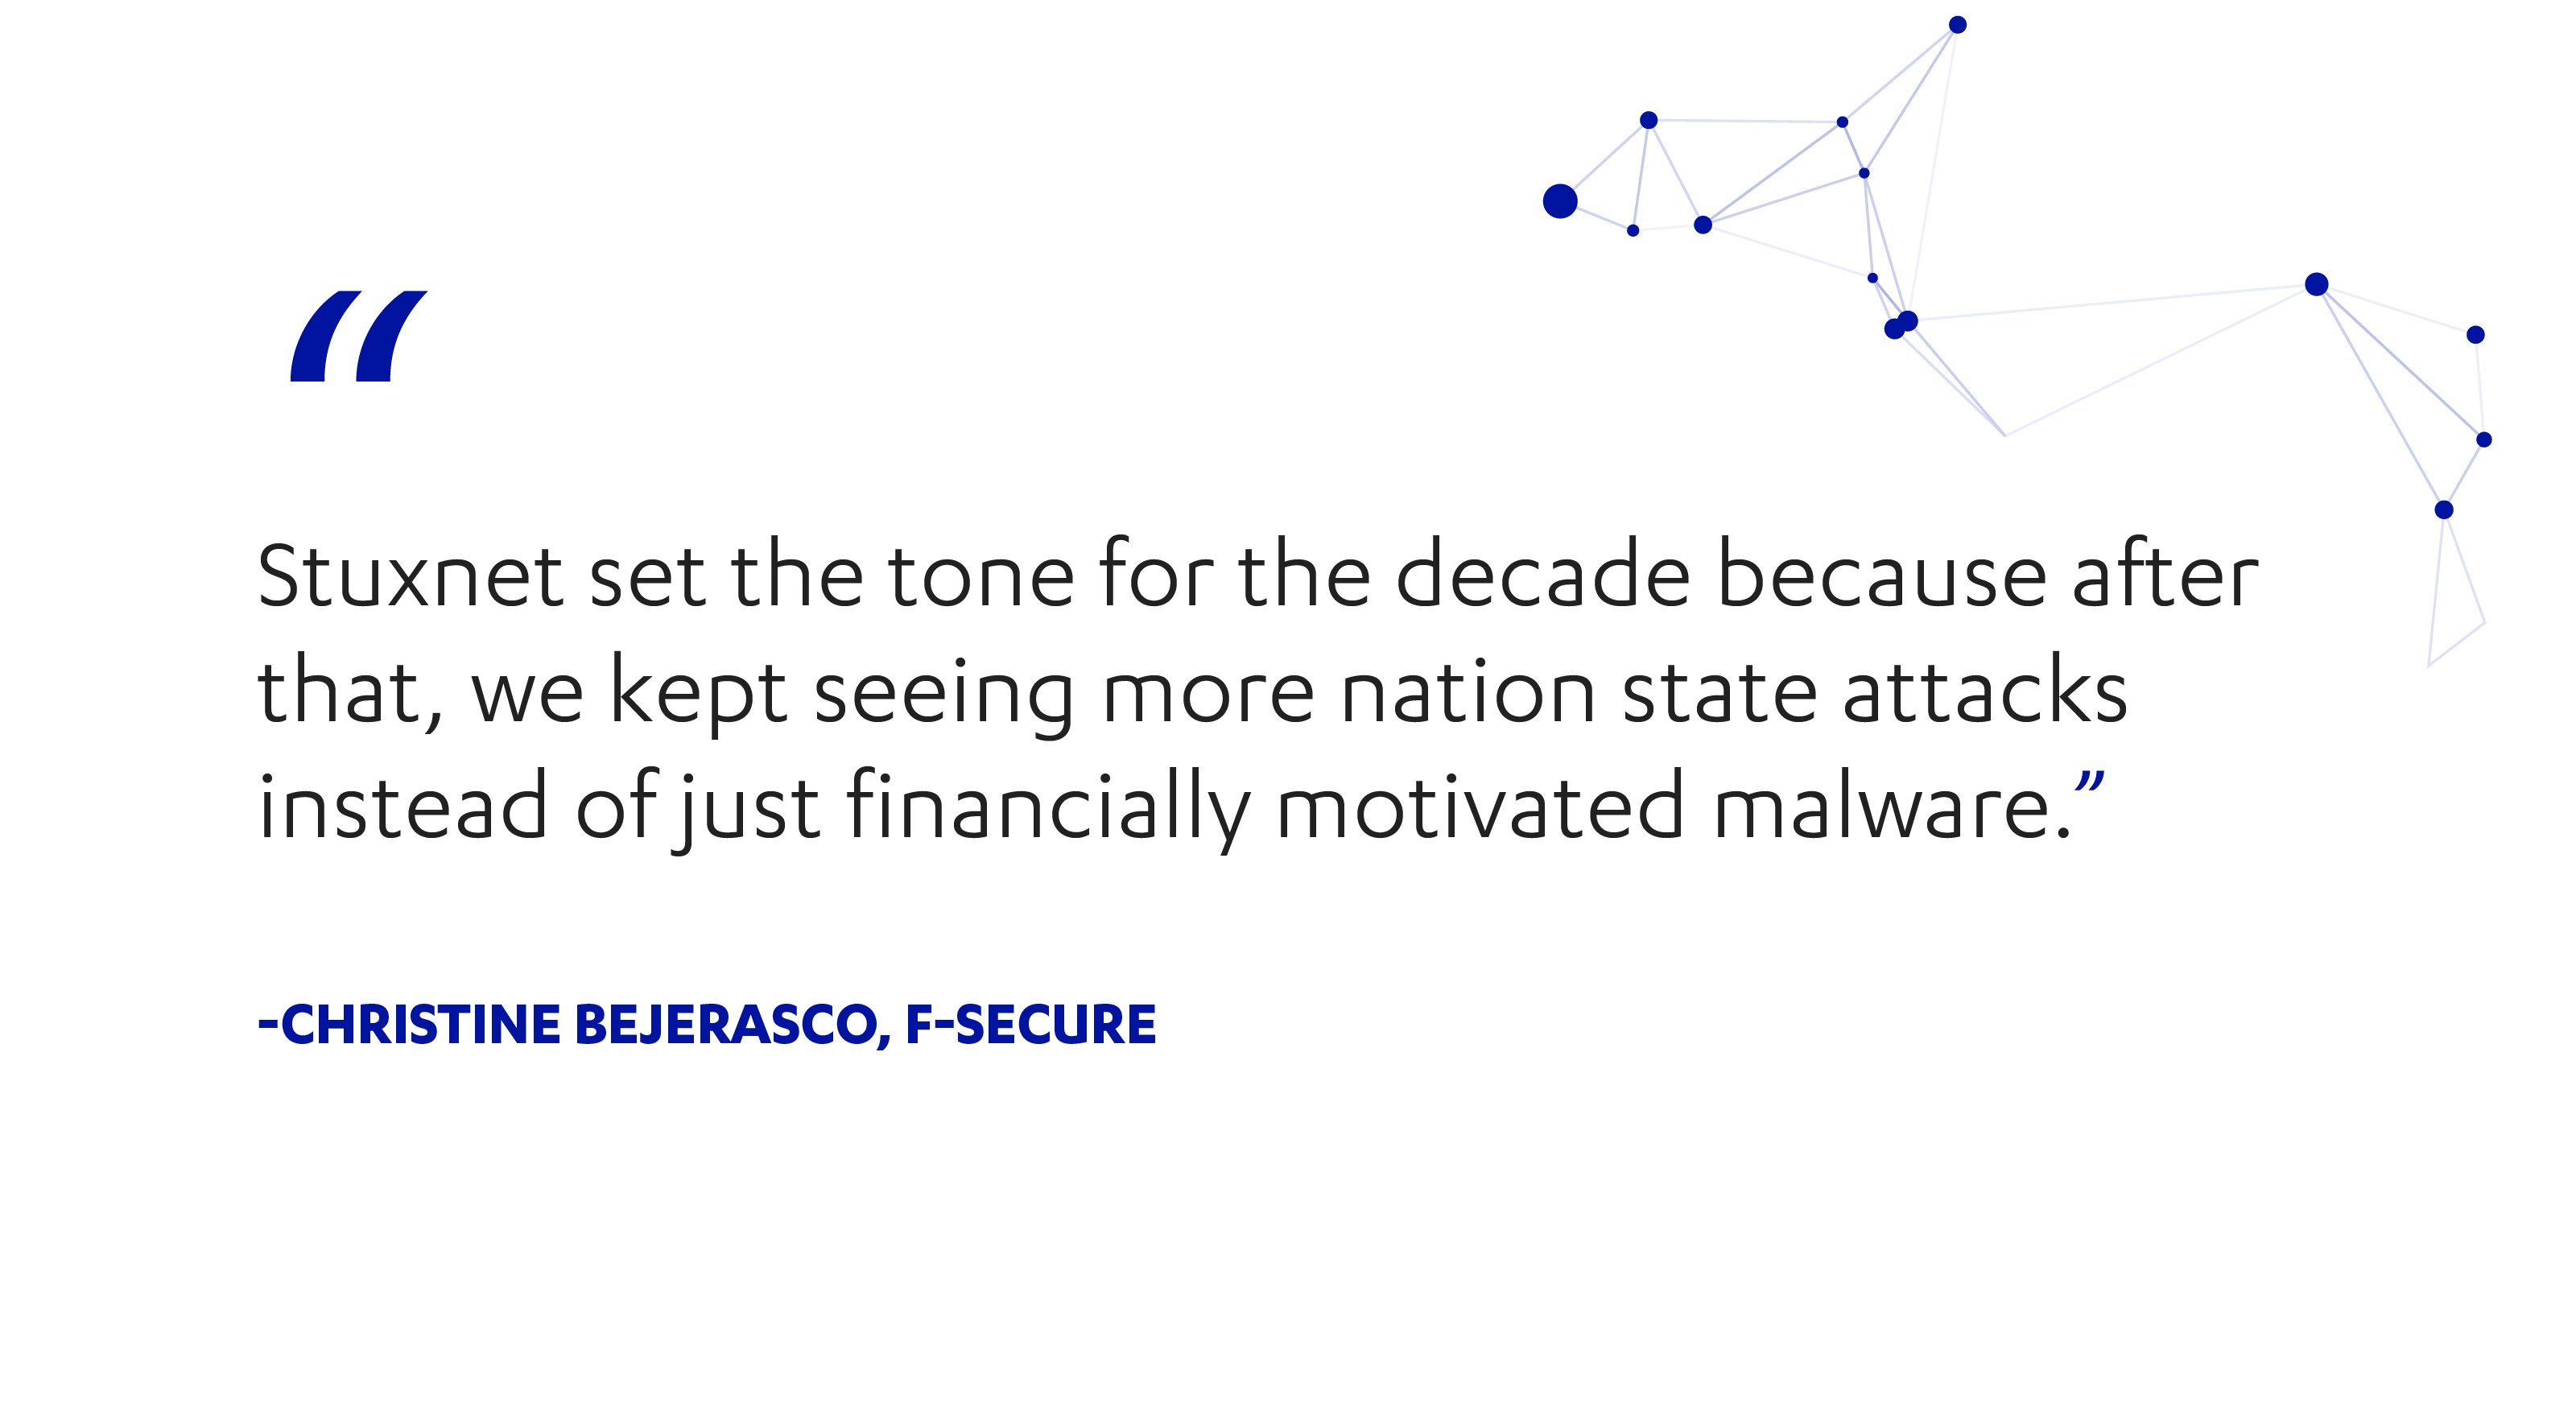 F-Secure's Christine Bejerasco on the past decade in cyber